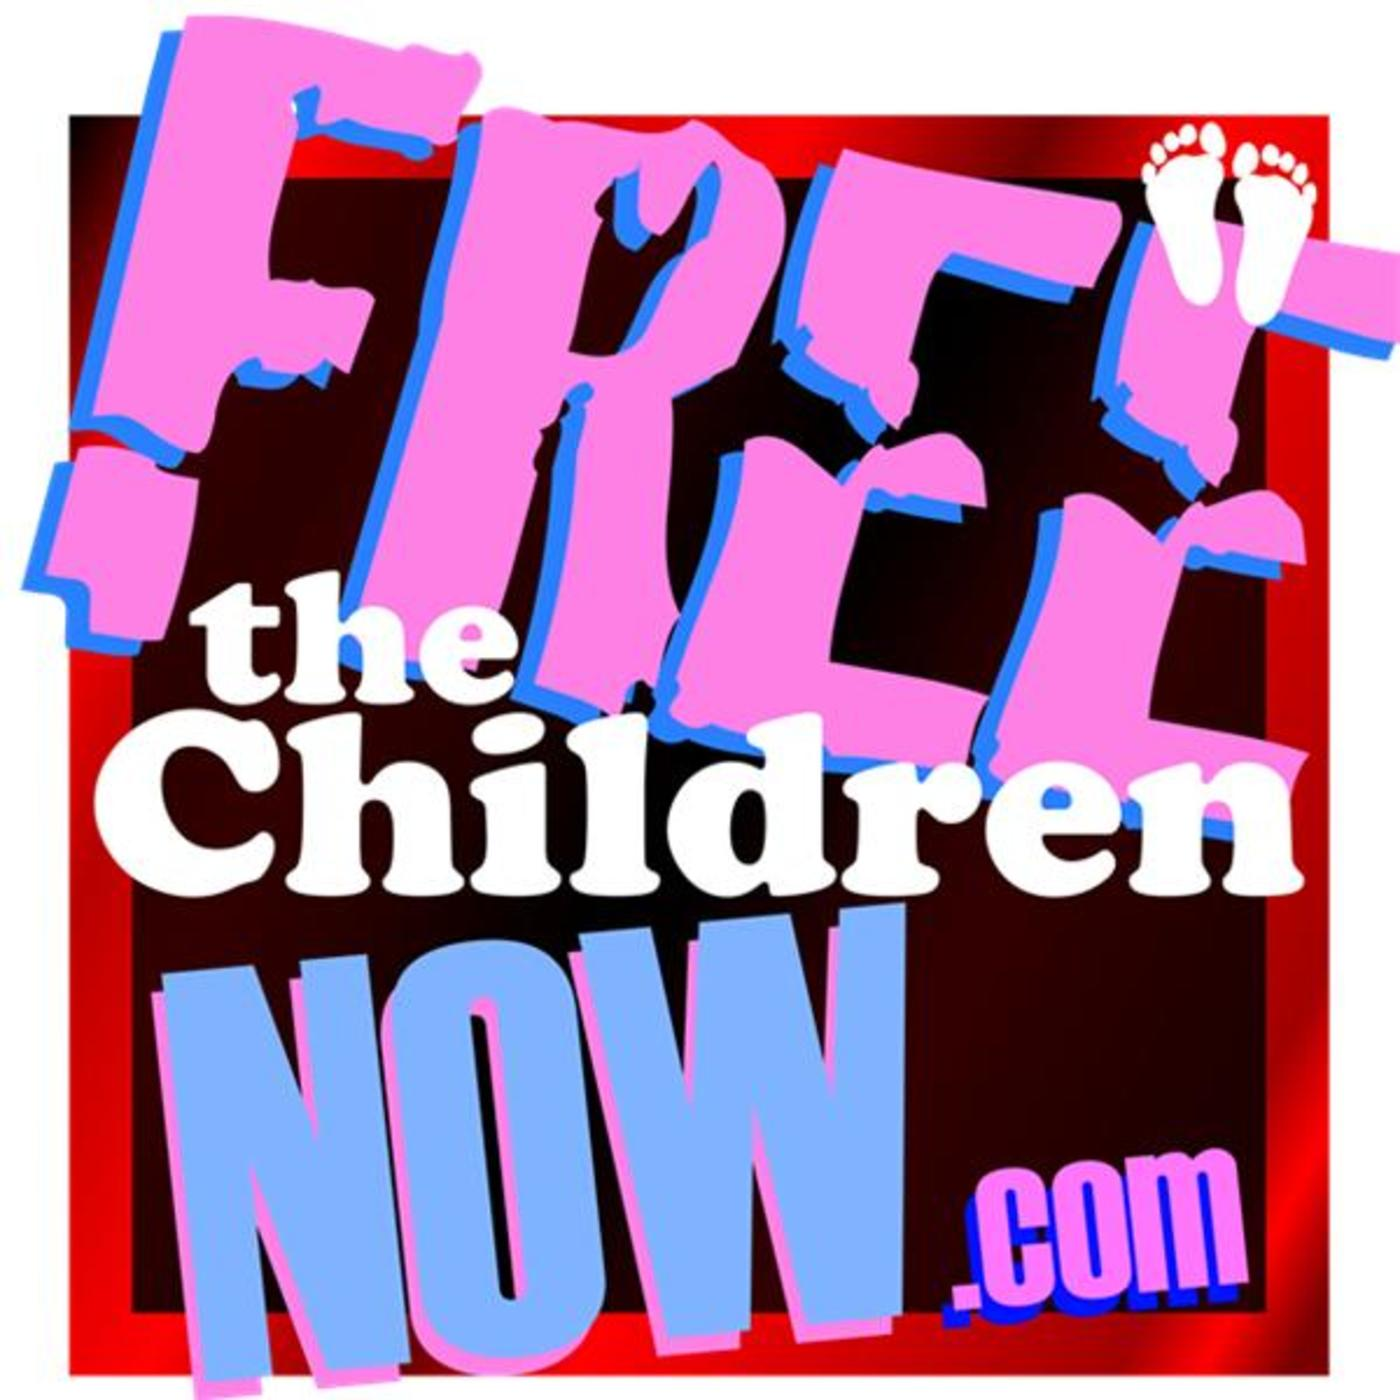 FREEtheChildrenNOW.com